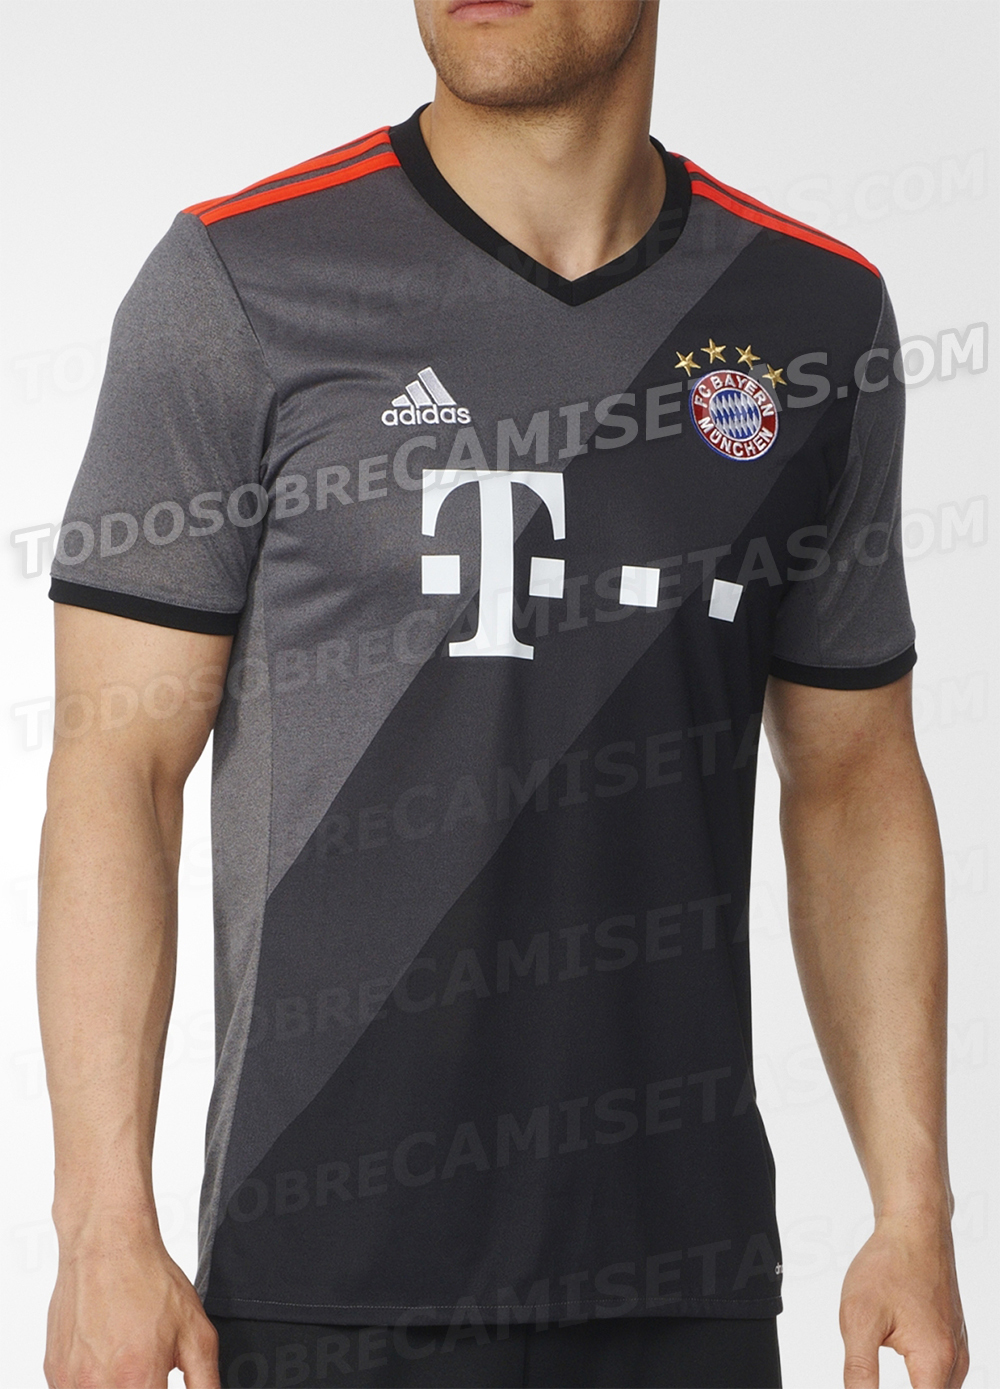 Bayern-Munchen-2016-17-adidas-away-kit-leaked-2.jpg